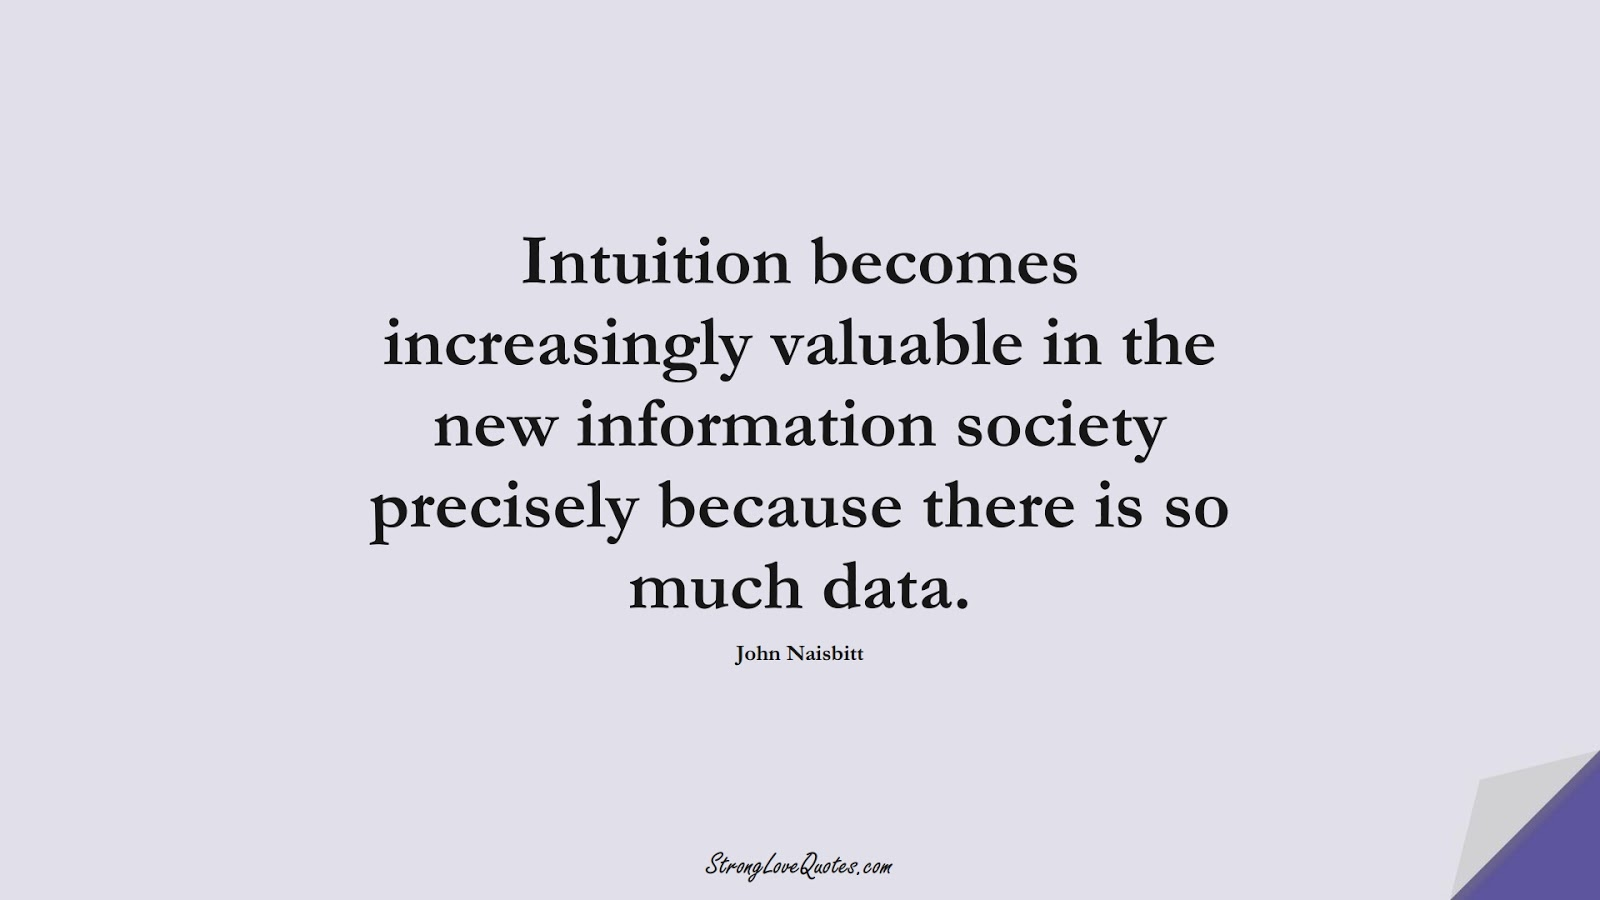 Intuition becomes increasingly valuable in the new information society precisely because there is so much data. (John Naisbitt);  #KnowledgeQuotes